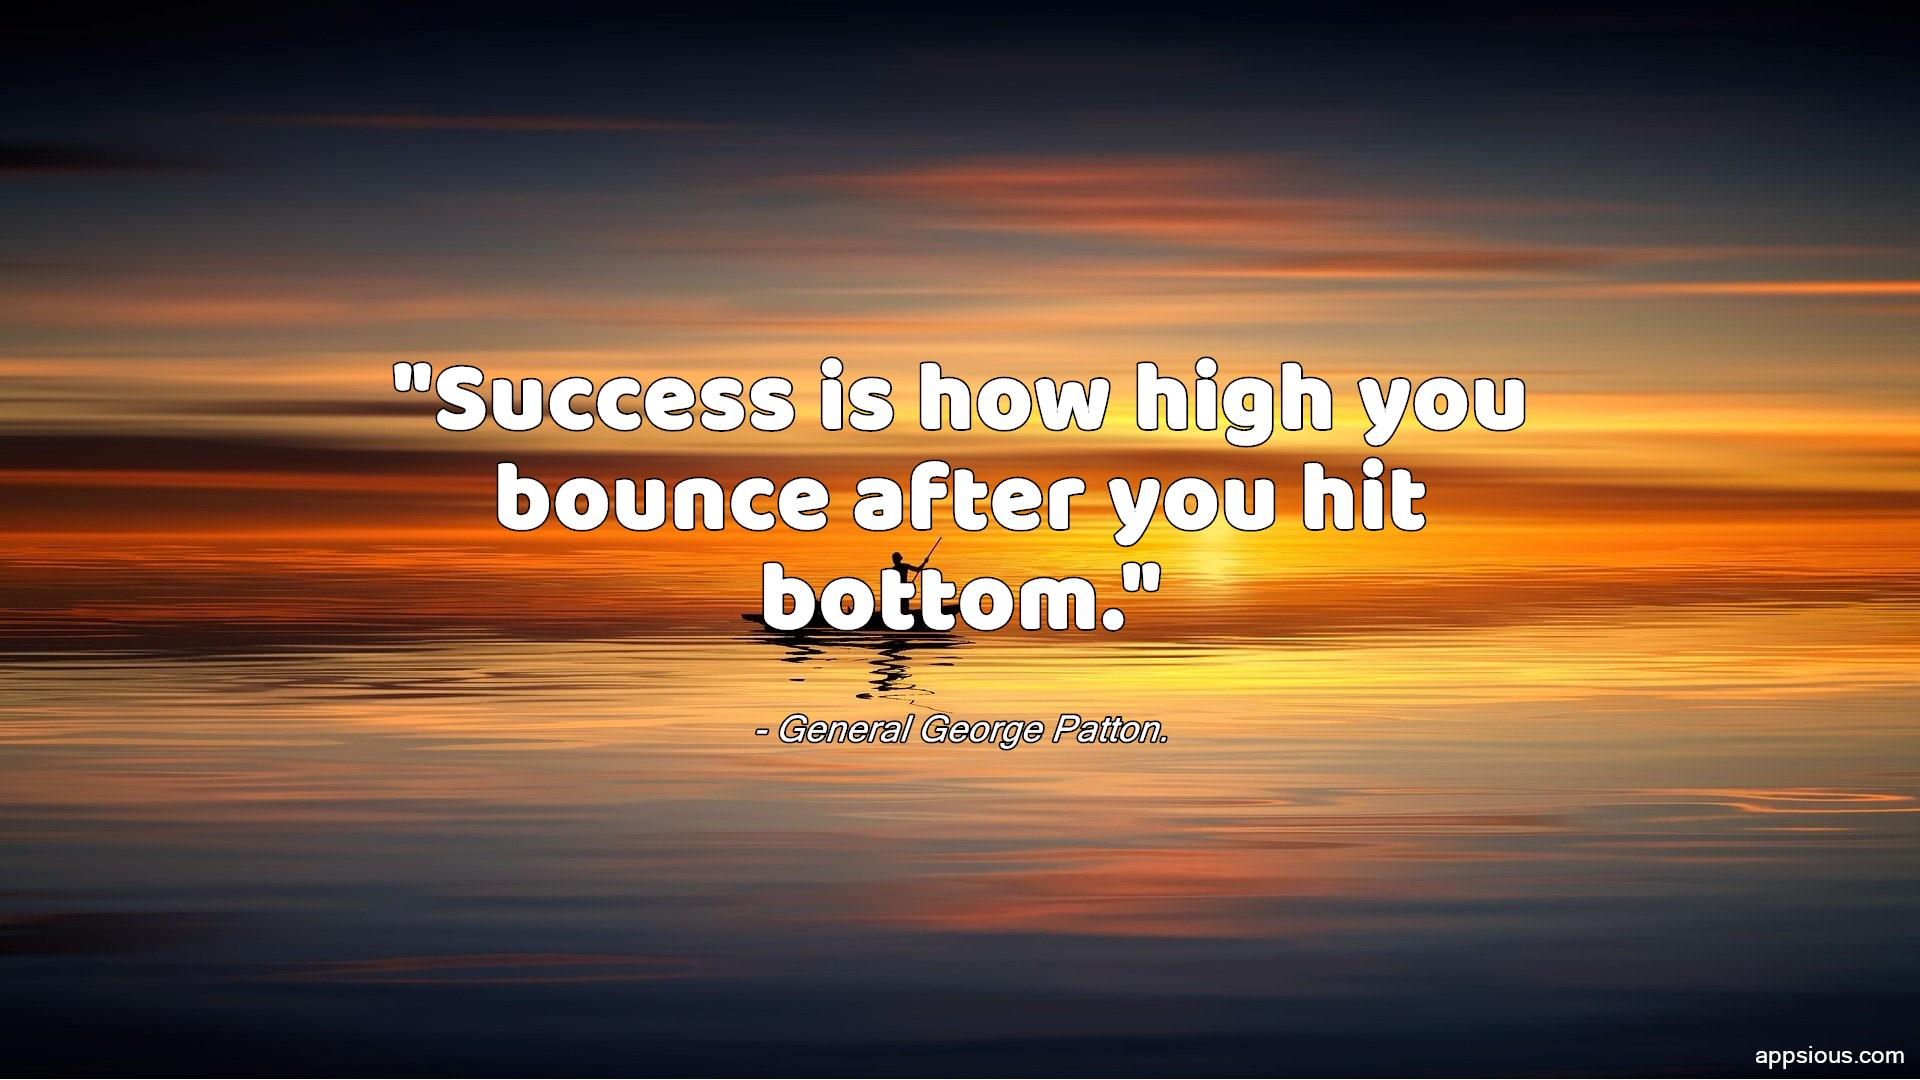 Success is how high you bounce after you hit bottom.